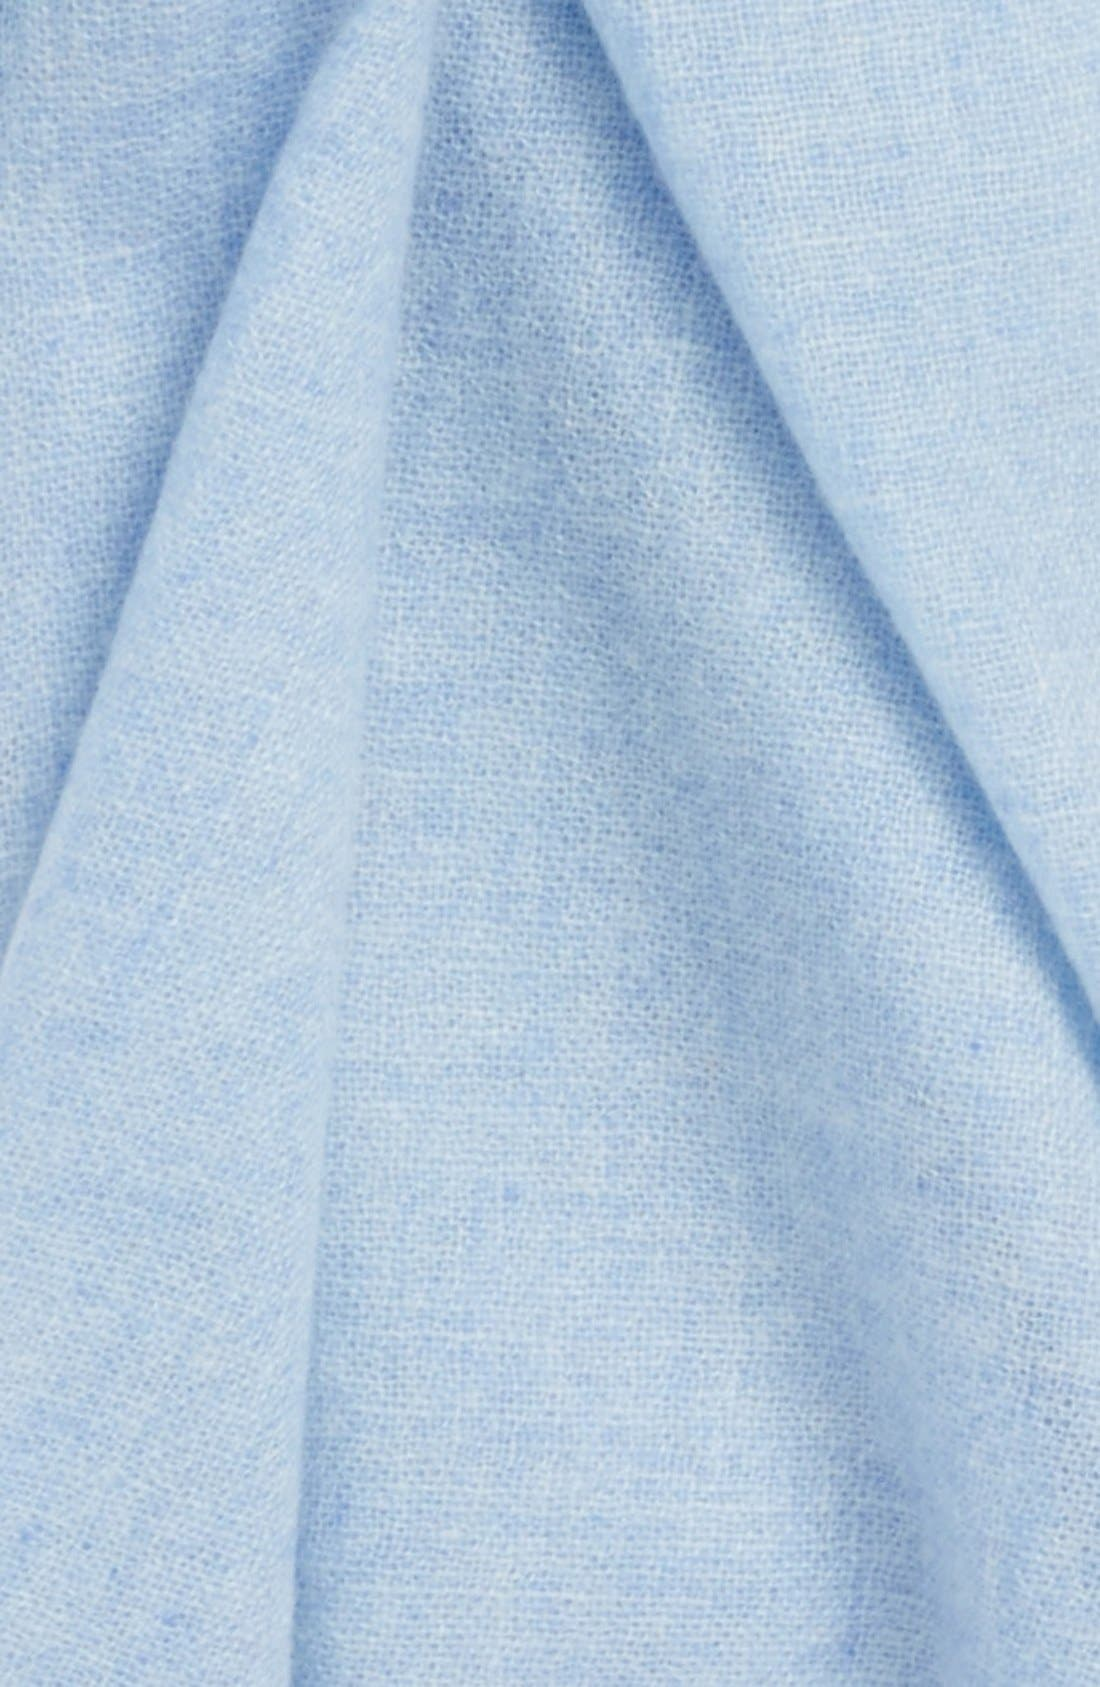 Caslon<sup>®</sup> Heathered Cashmere Gauze Scarf,                             Alternate thumbnail 31, color,